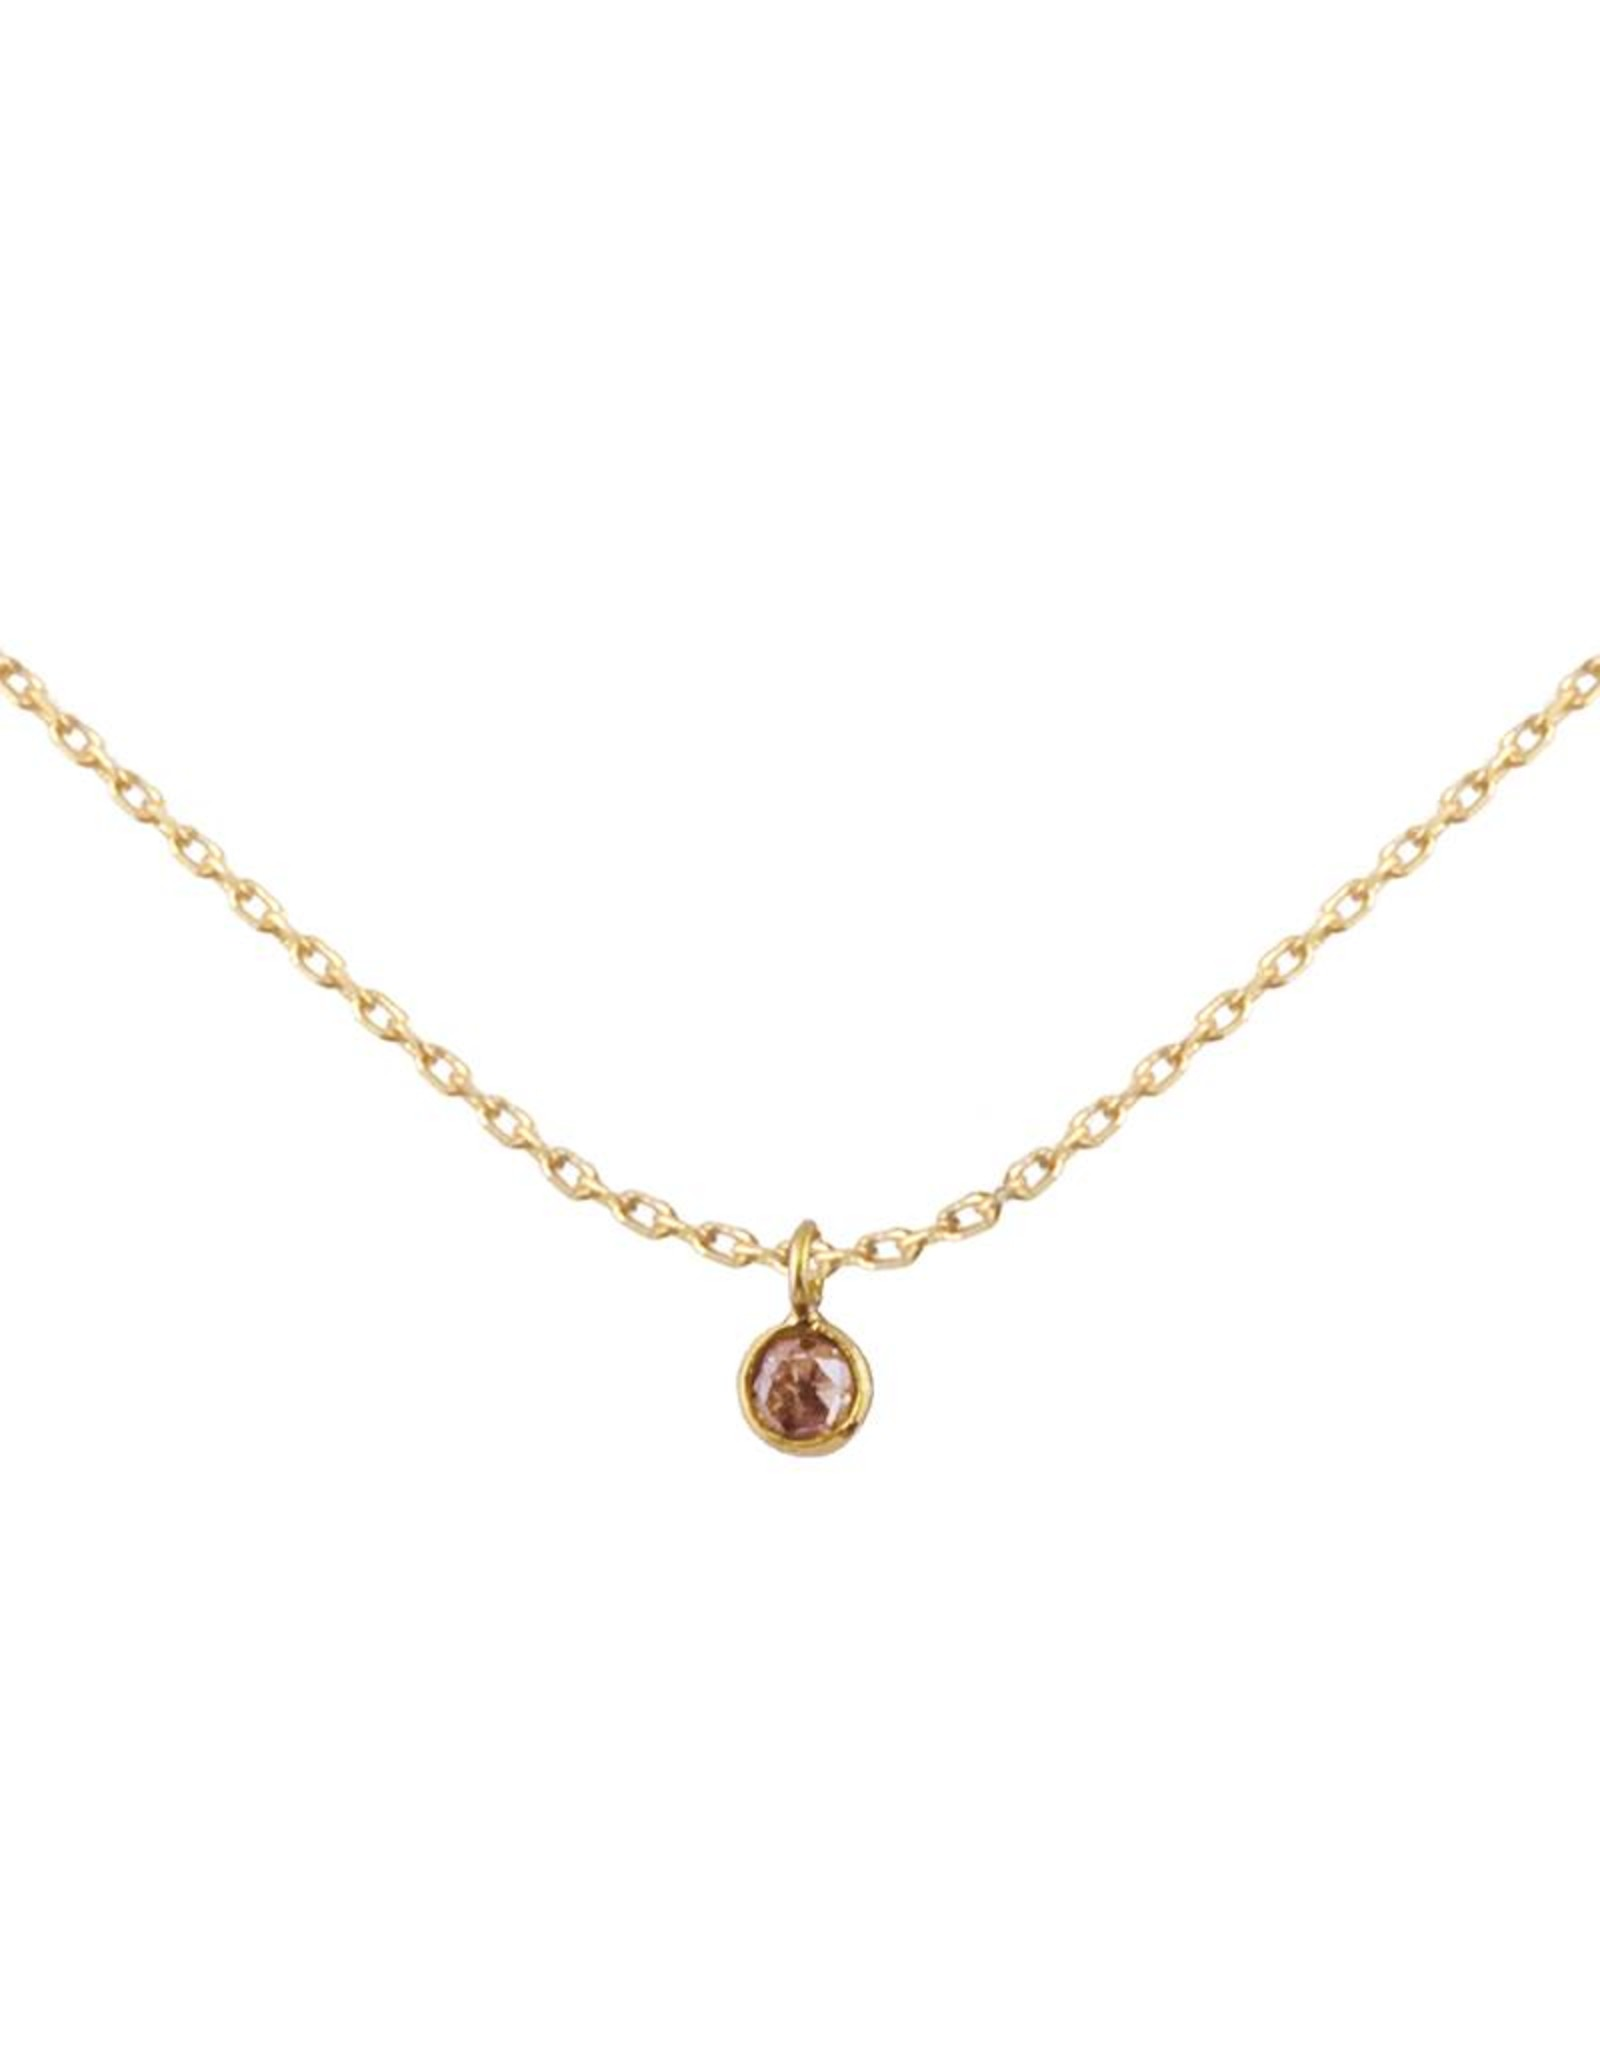 Bo Gold Necklace - Gold - Champagne diamond